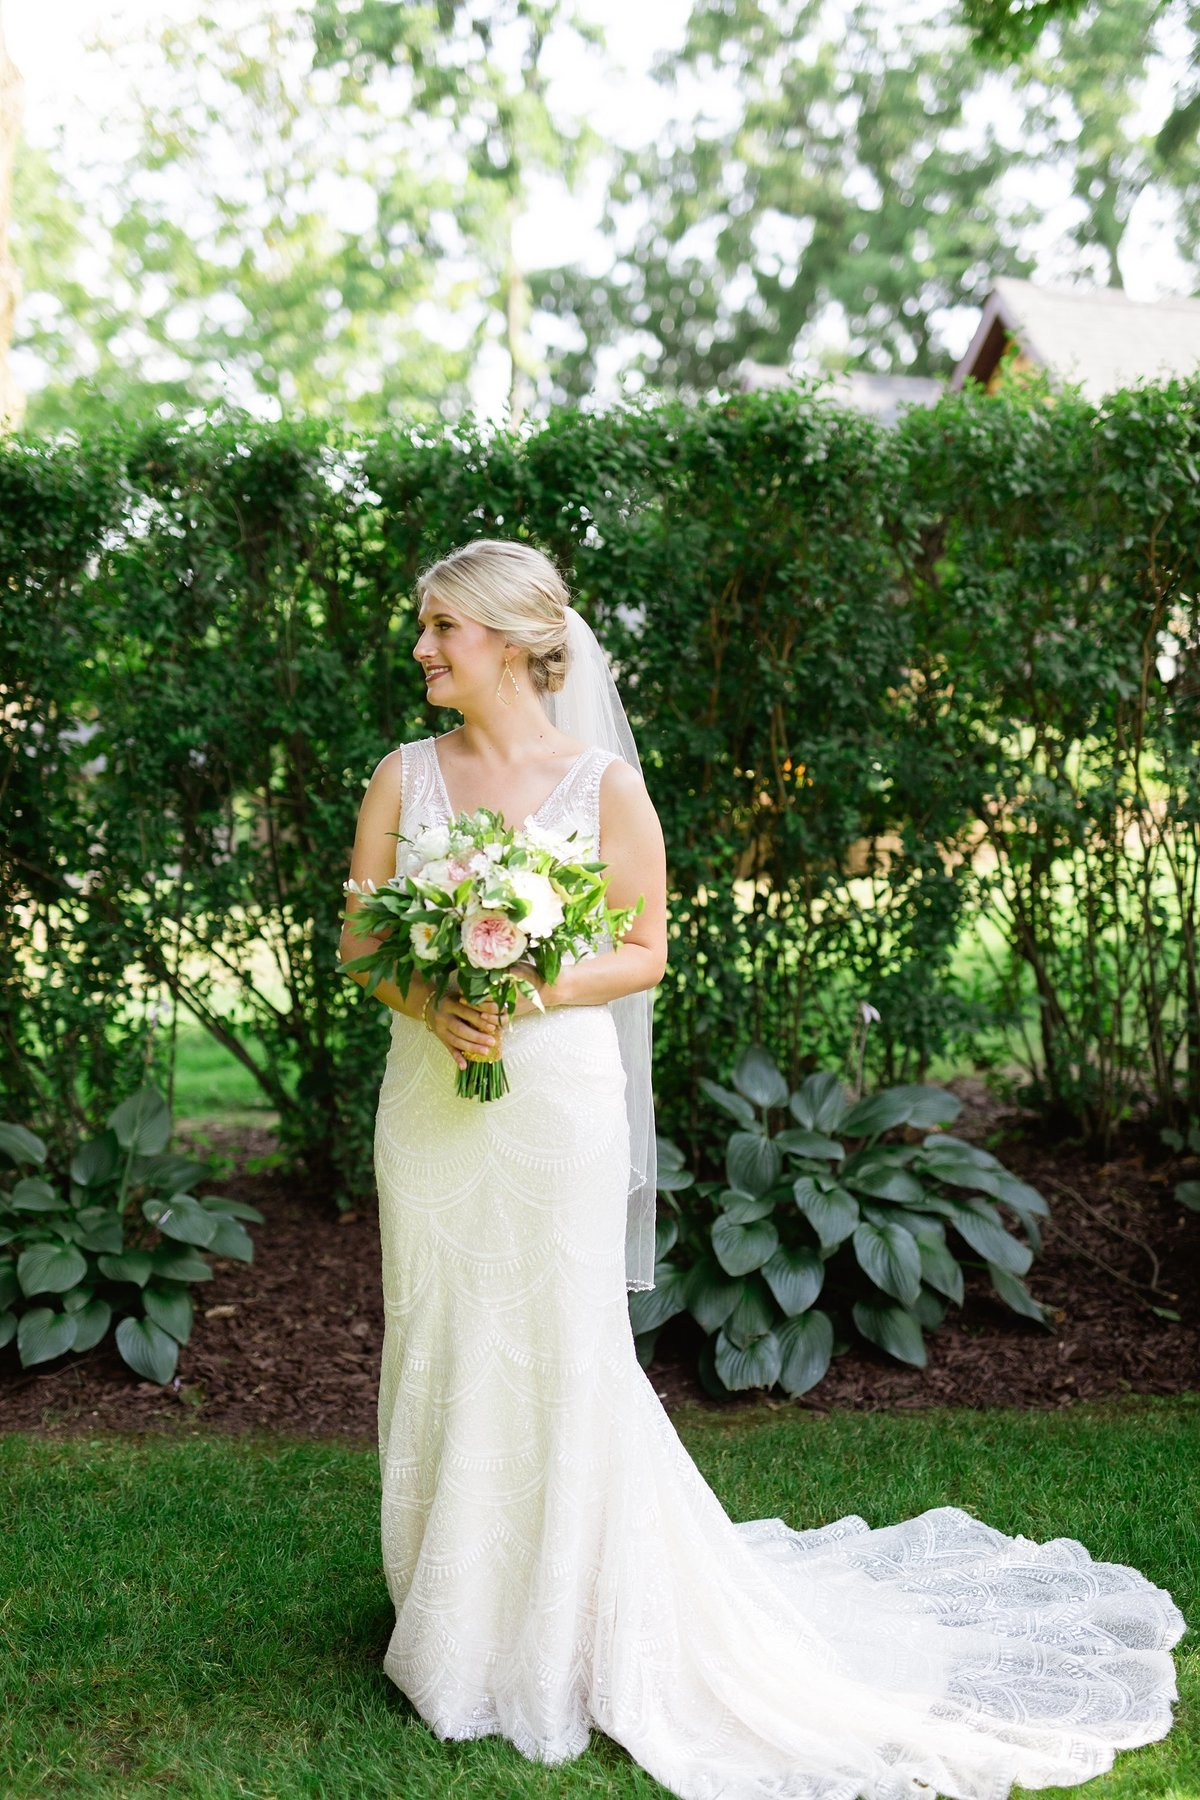 Julie-Barry-English-Inn-Summer-Garden-Wedding-Michigan-Breanne-Rochelle-Photography36